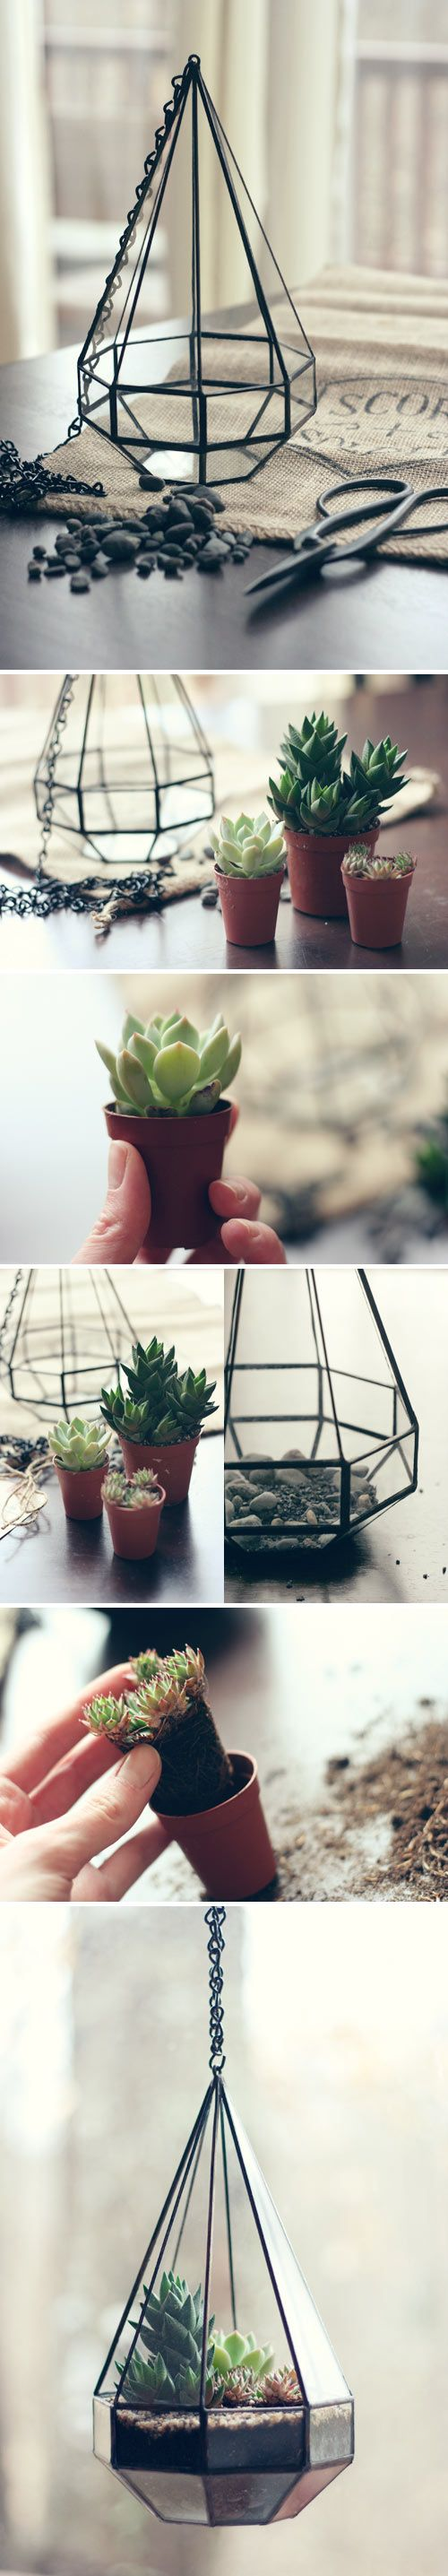 U003cbu003eFor Even The Most Botanically Inept, Terrariums Are Super Easy To Make  And Incredibly Low Maintenance.u003c/bu003e They Also Make Pretty Much The Best  Gifts Or ...